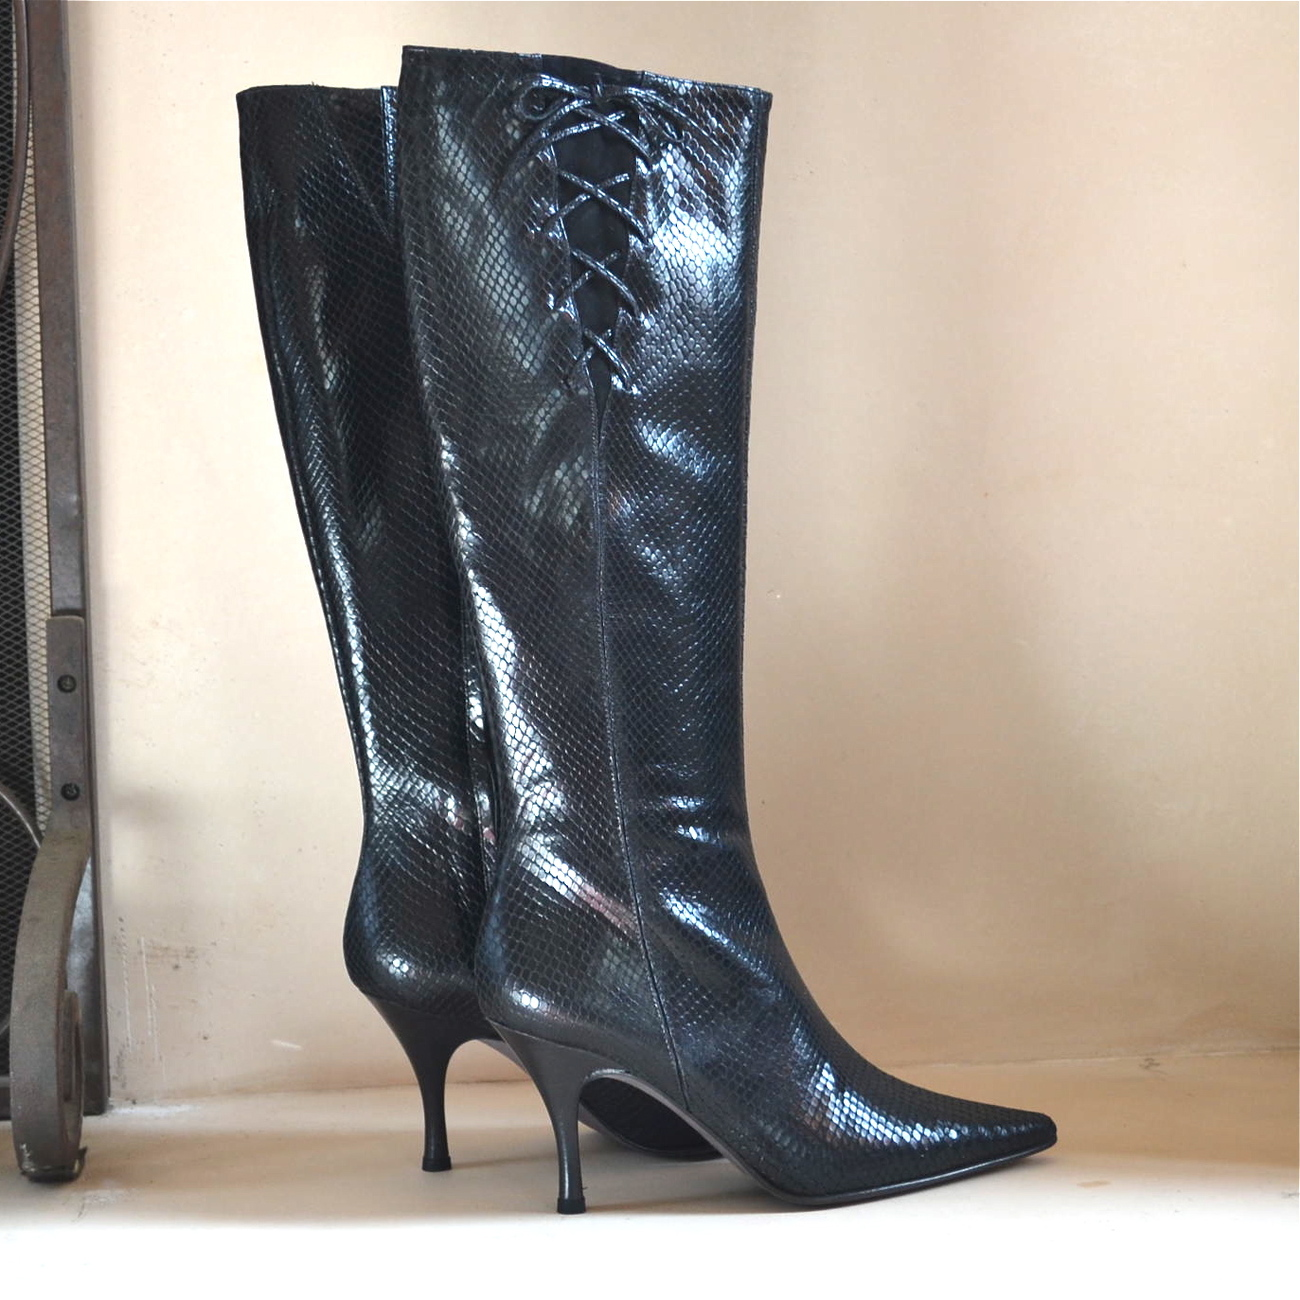 Banana Republic Boots Leather CLEO Black Snake Reptile Print Stiletto Heels 6M